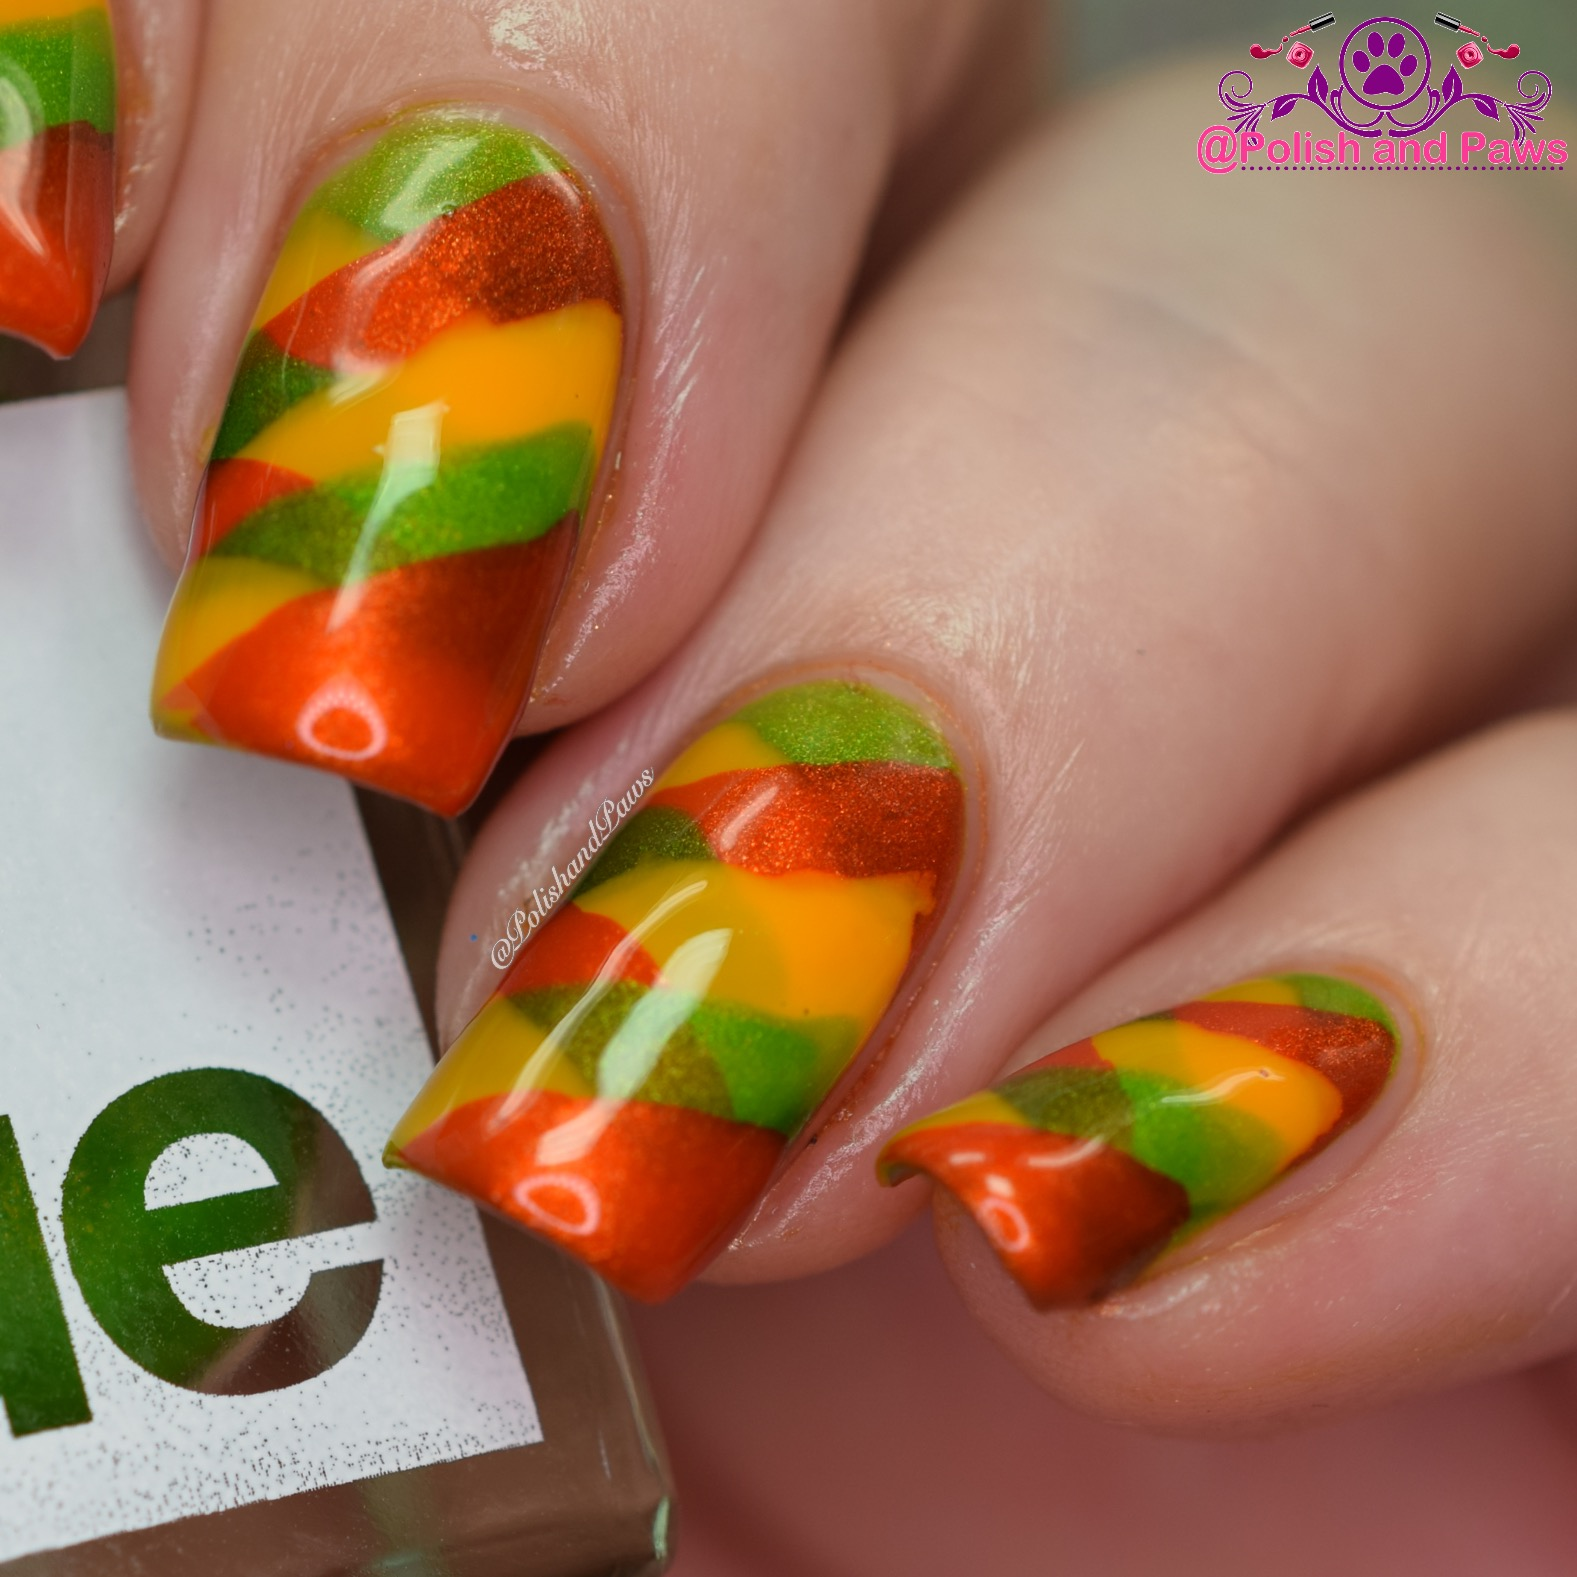 Square Hue Braided Nails